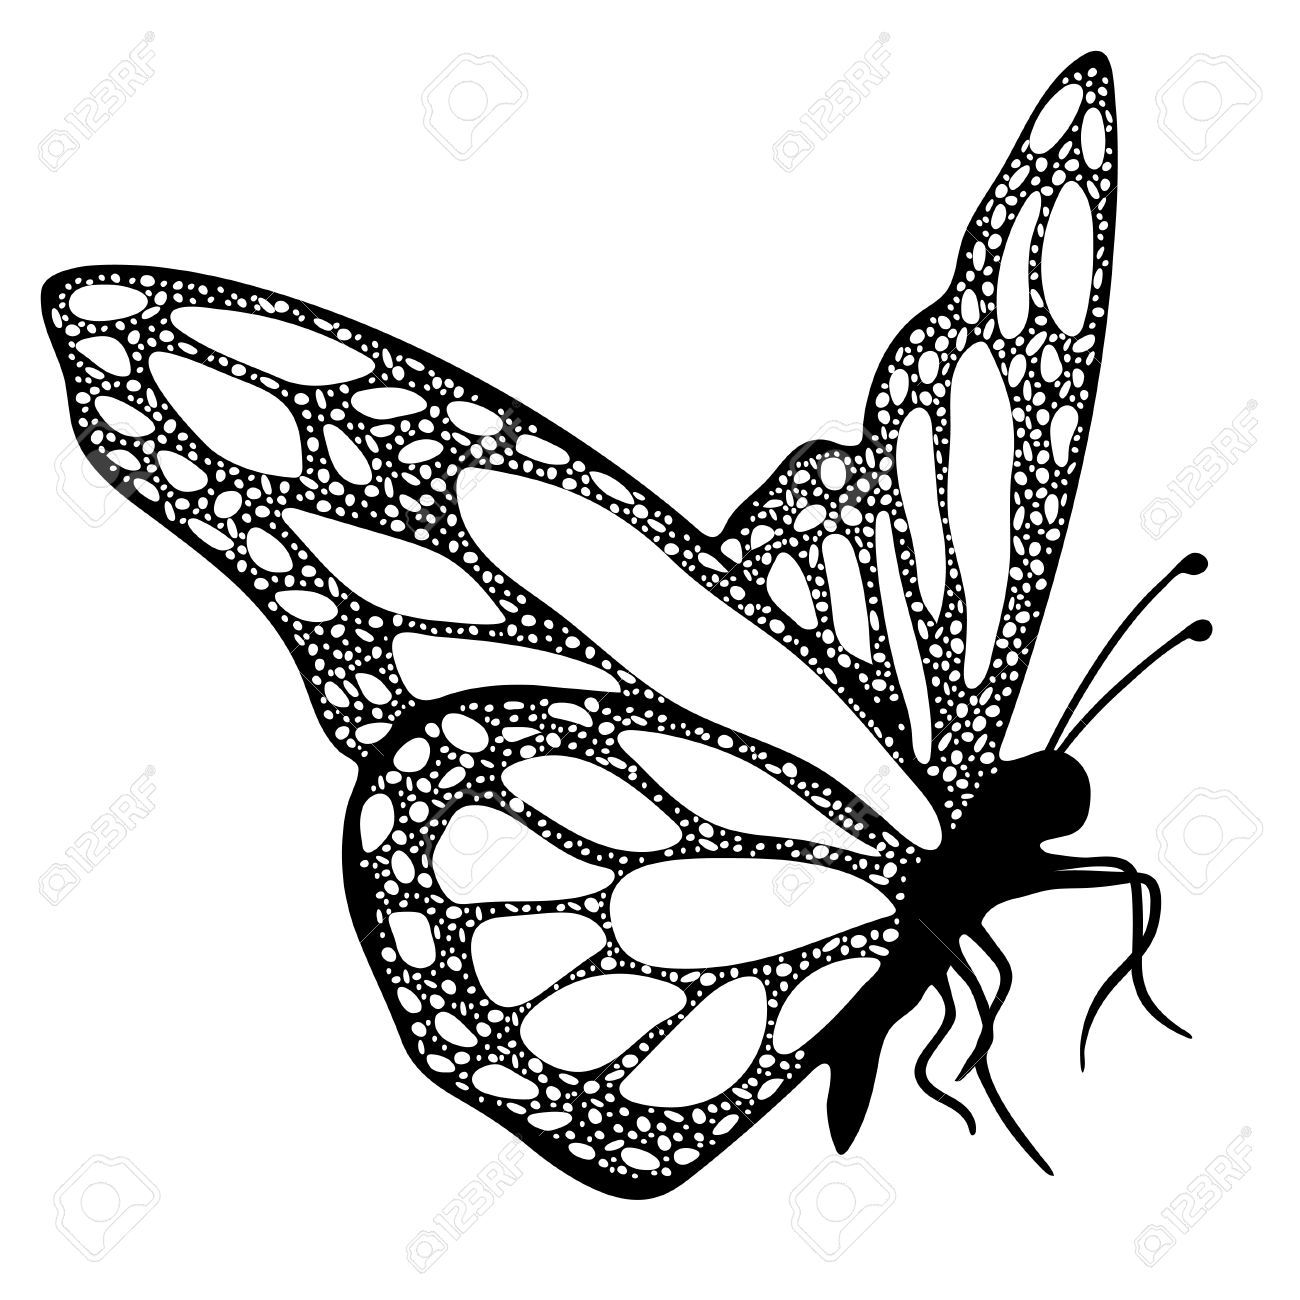 Butterfly monochrome coloring book black and white illustration